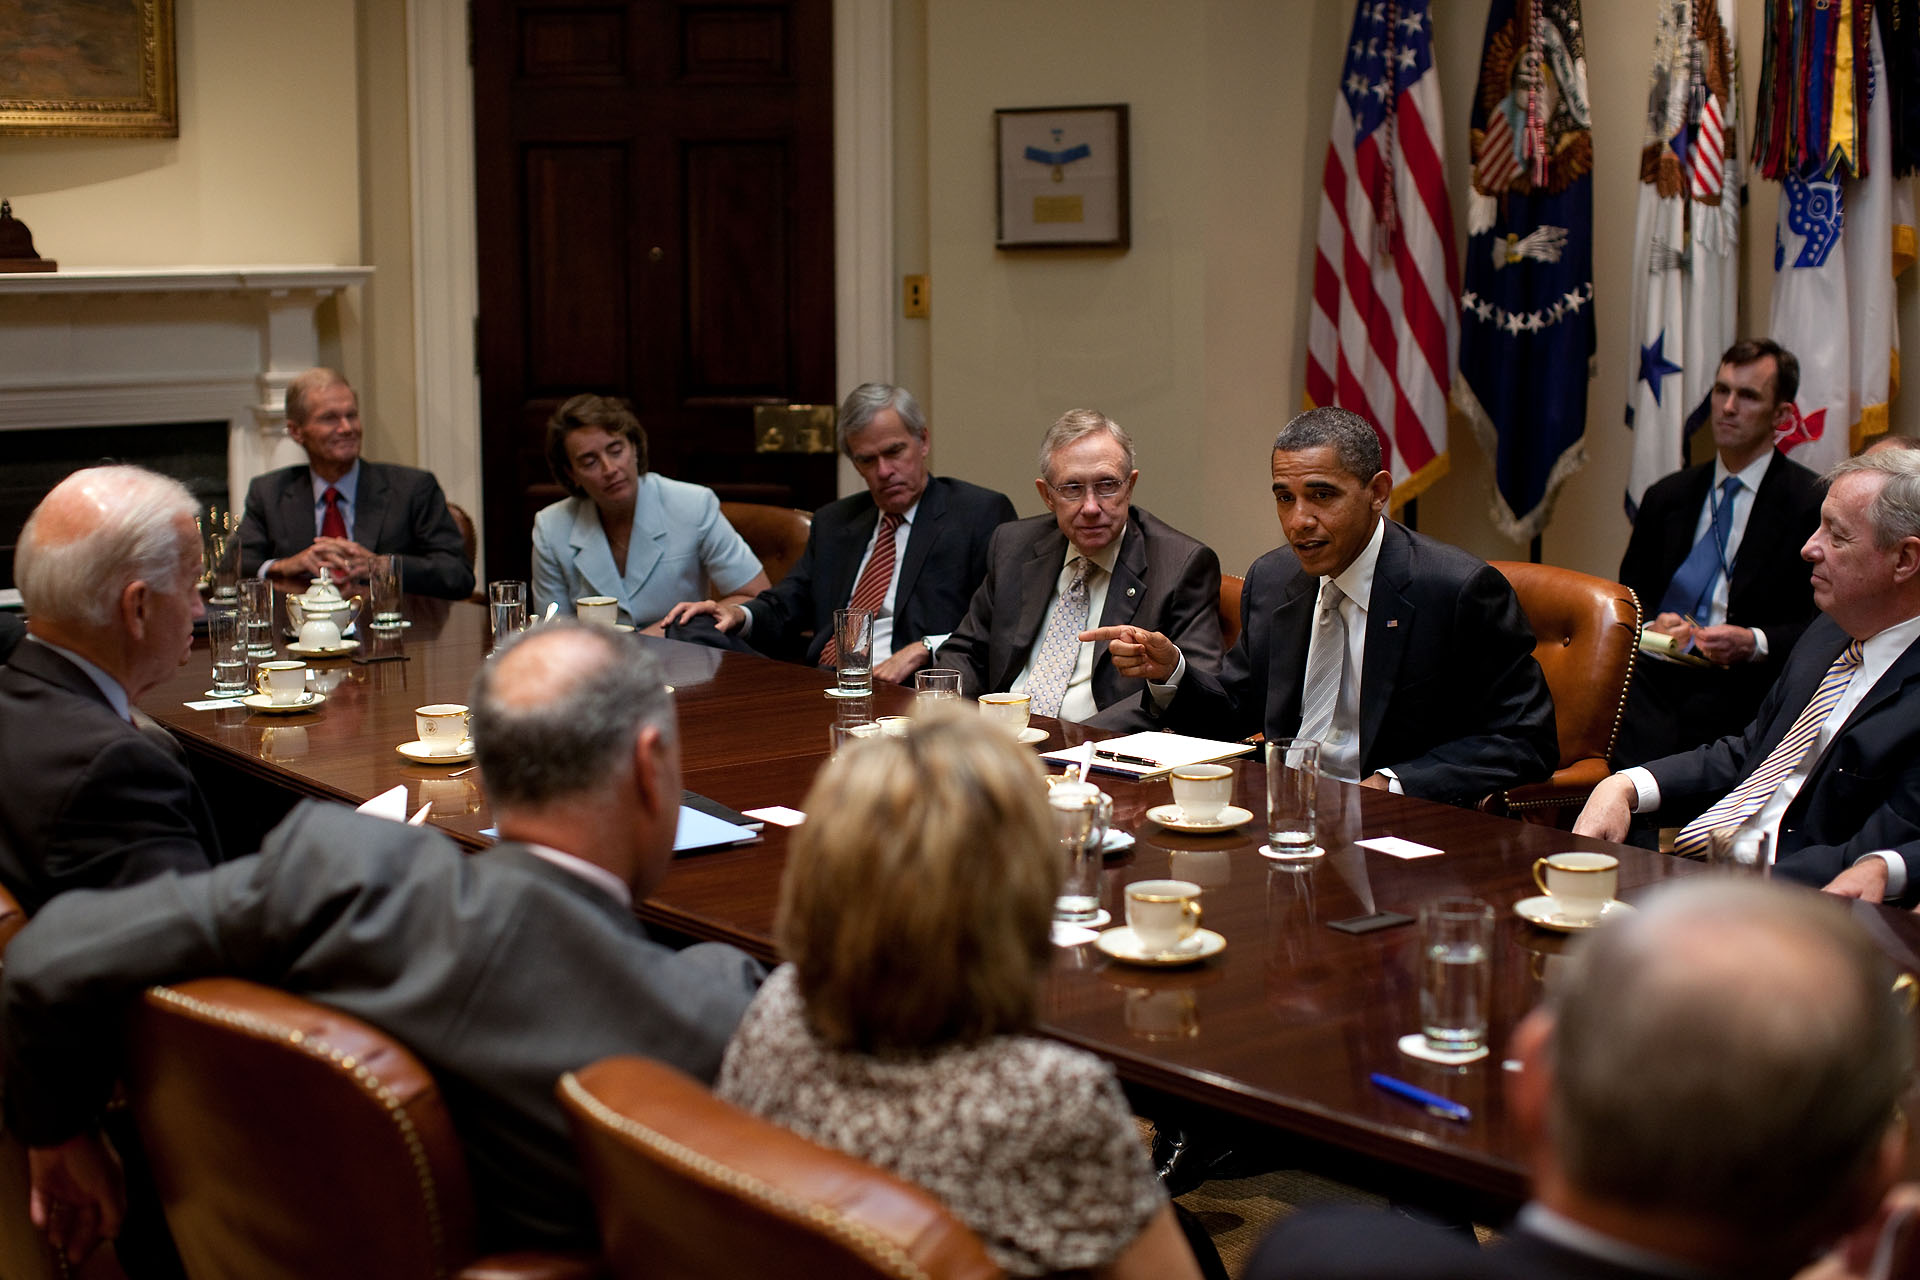 President Barack Obama and Vice President Joe Biden Meet with the Senate Democratic Leadership Team